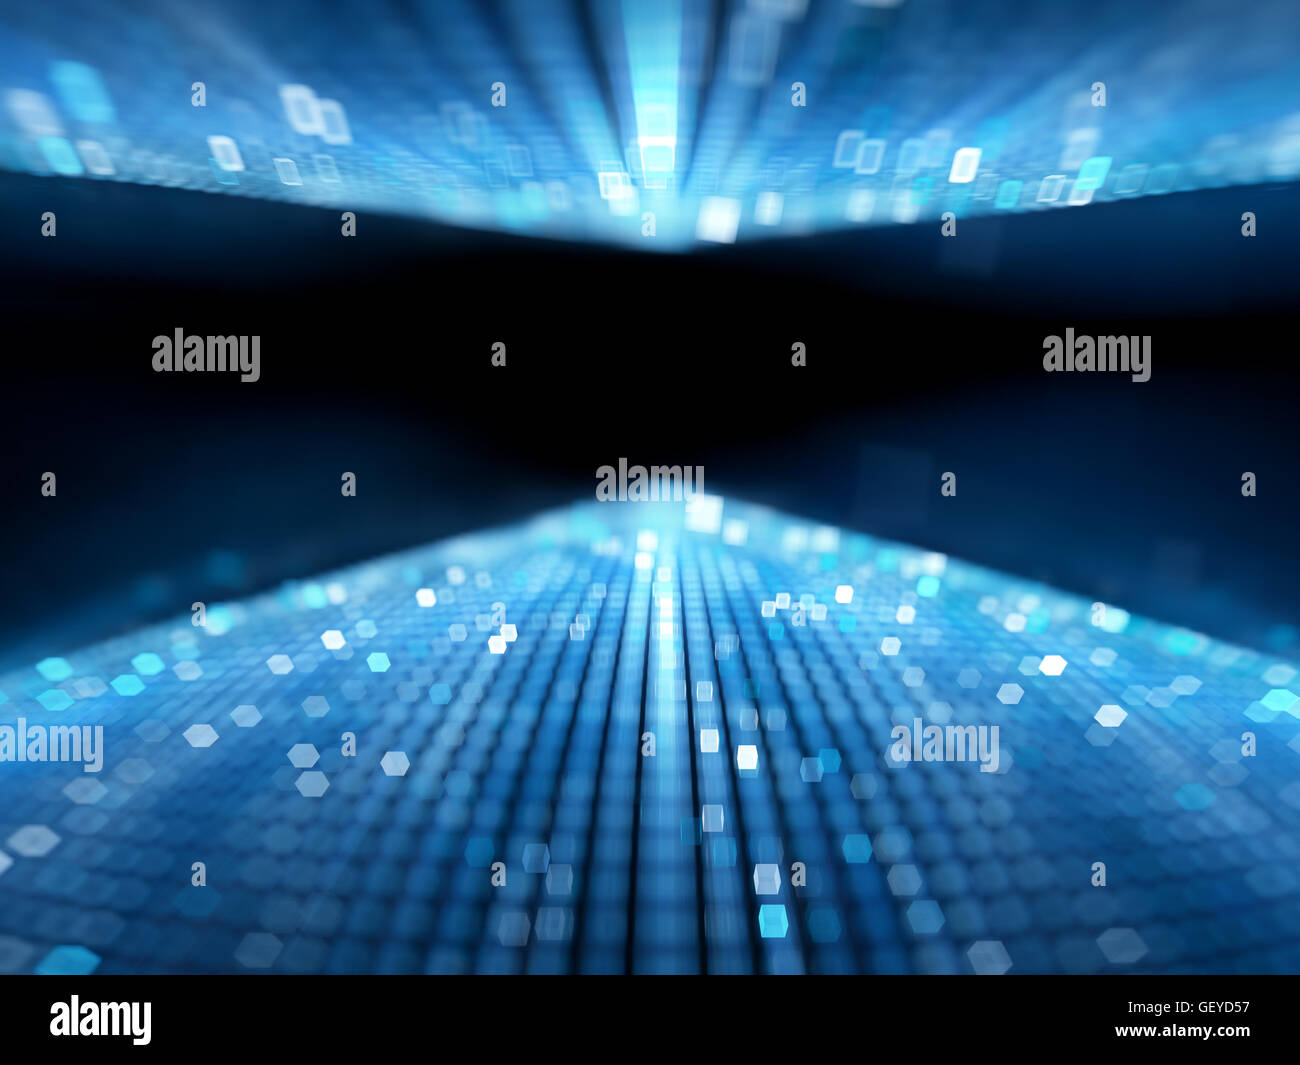 Blue glowing flowing big data stream, computer generated abstract background - Stock Image